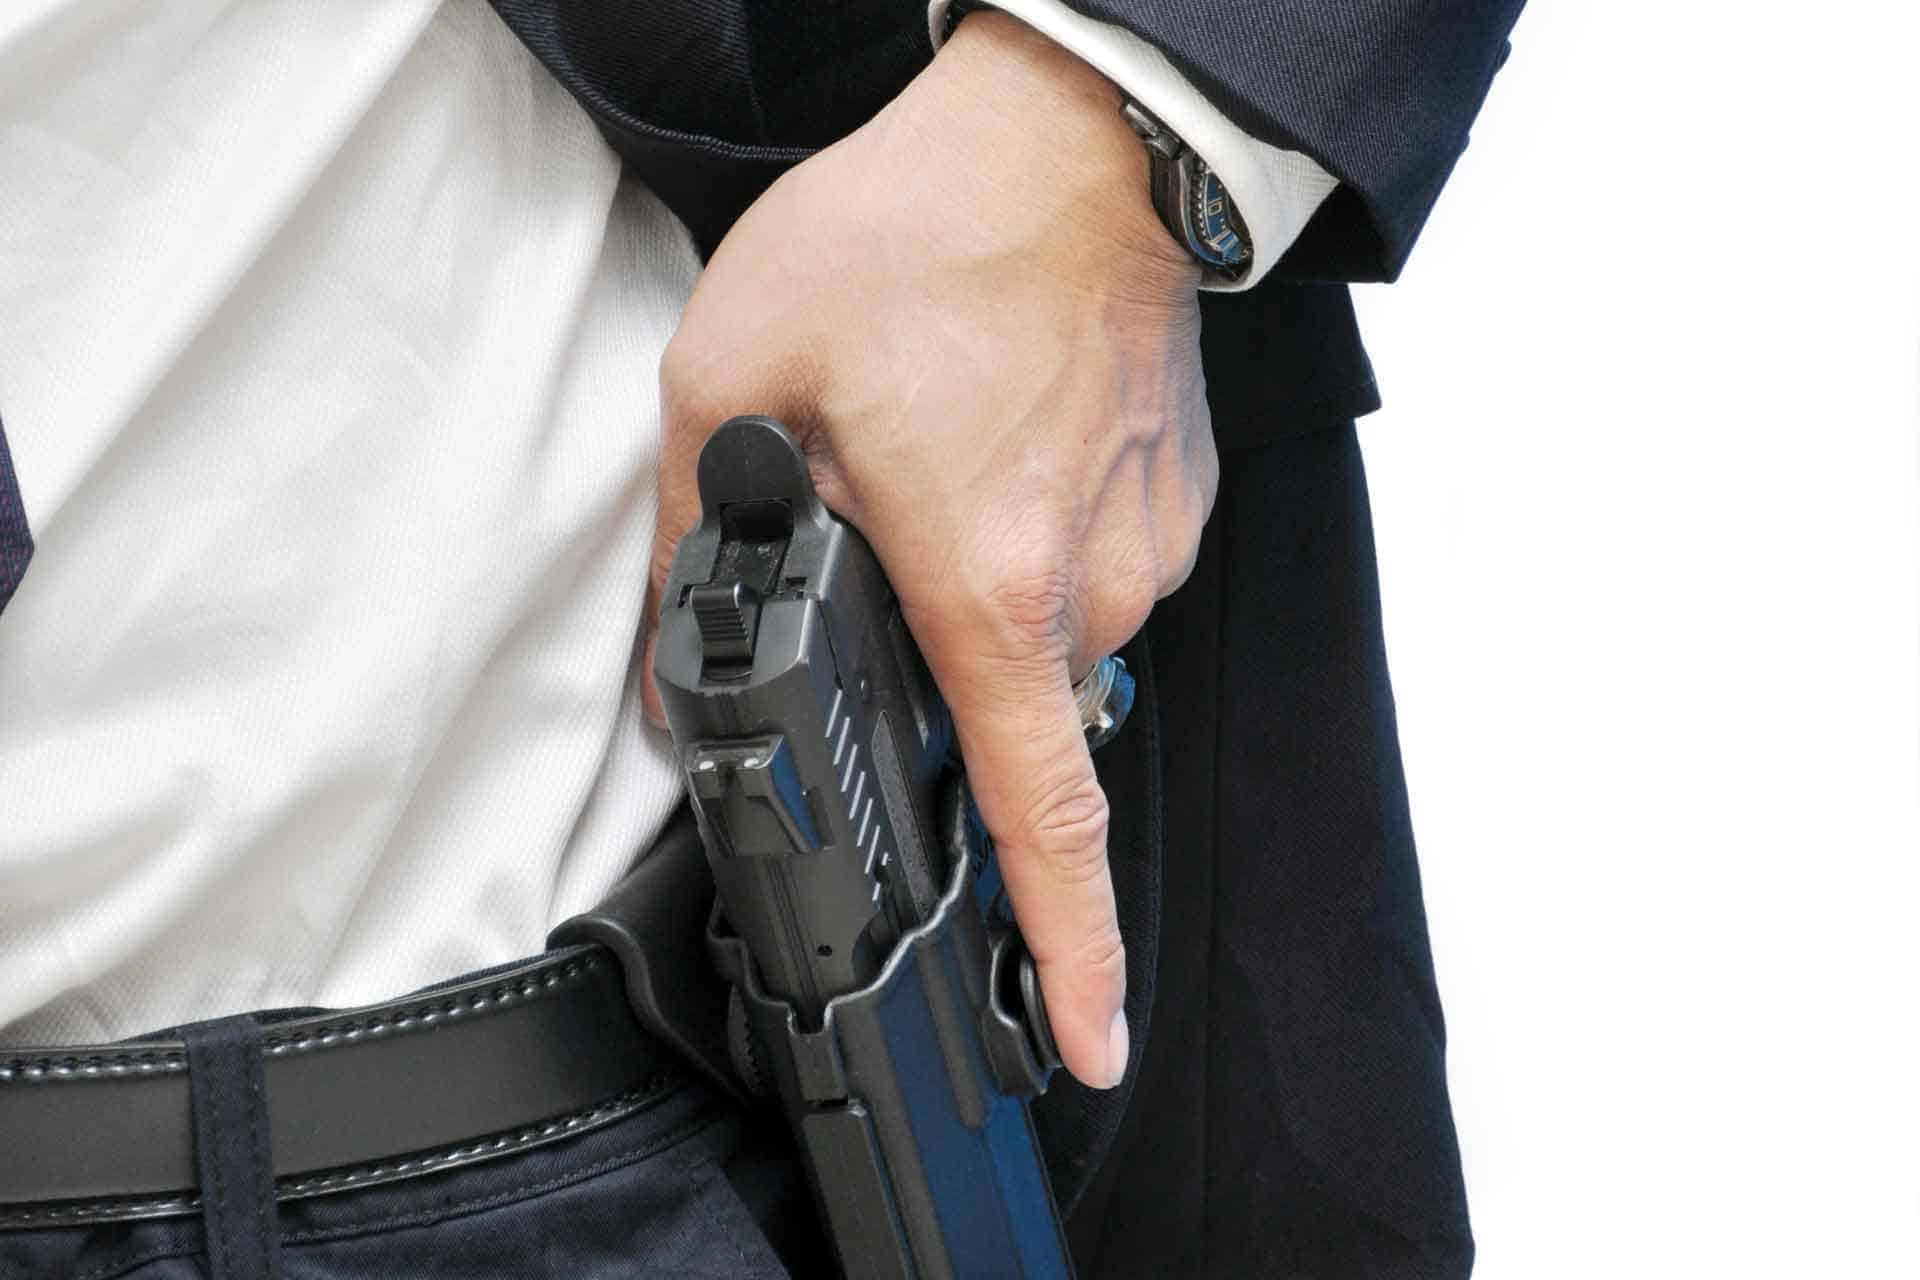 Armed bodyguard removing a gun from his holster